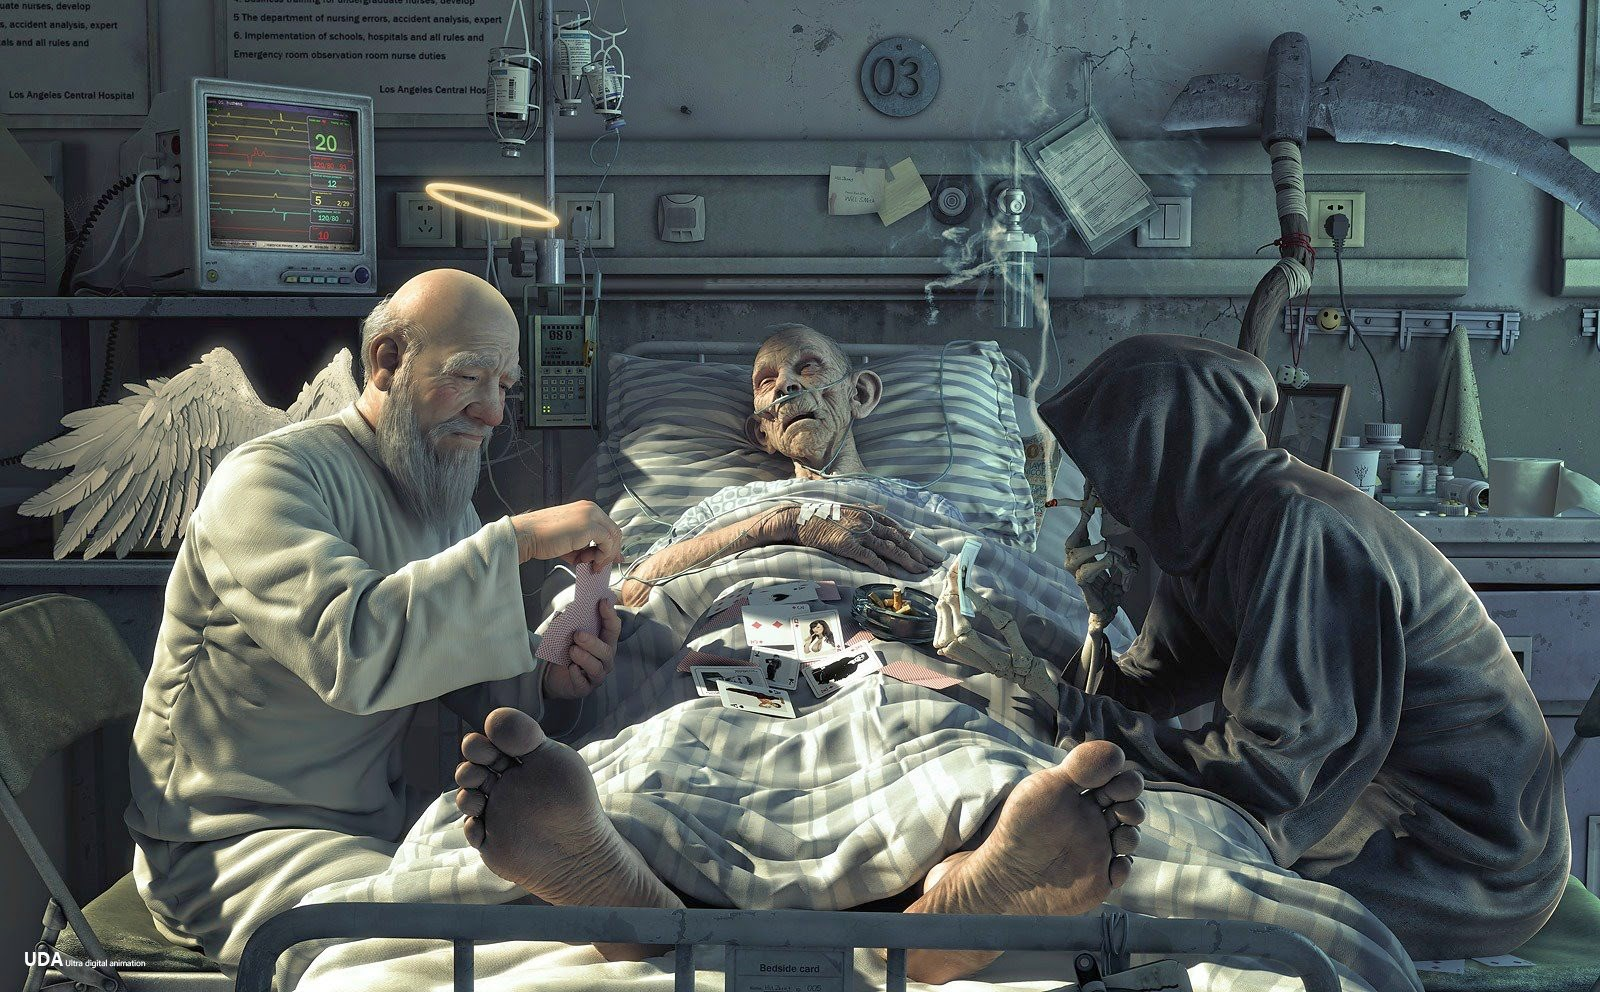 old-man-in-bed-funny-wallpapers-collection-for-desktop-PC.jpg